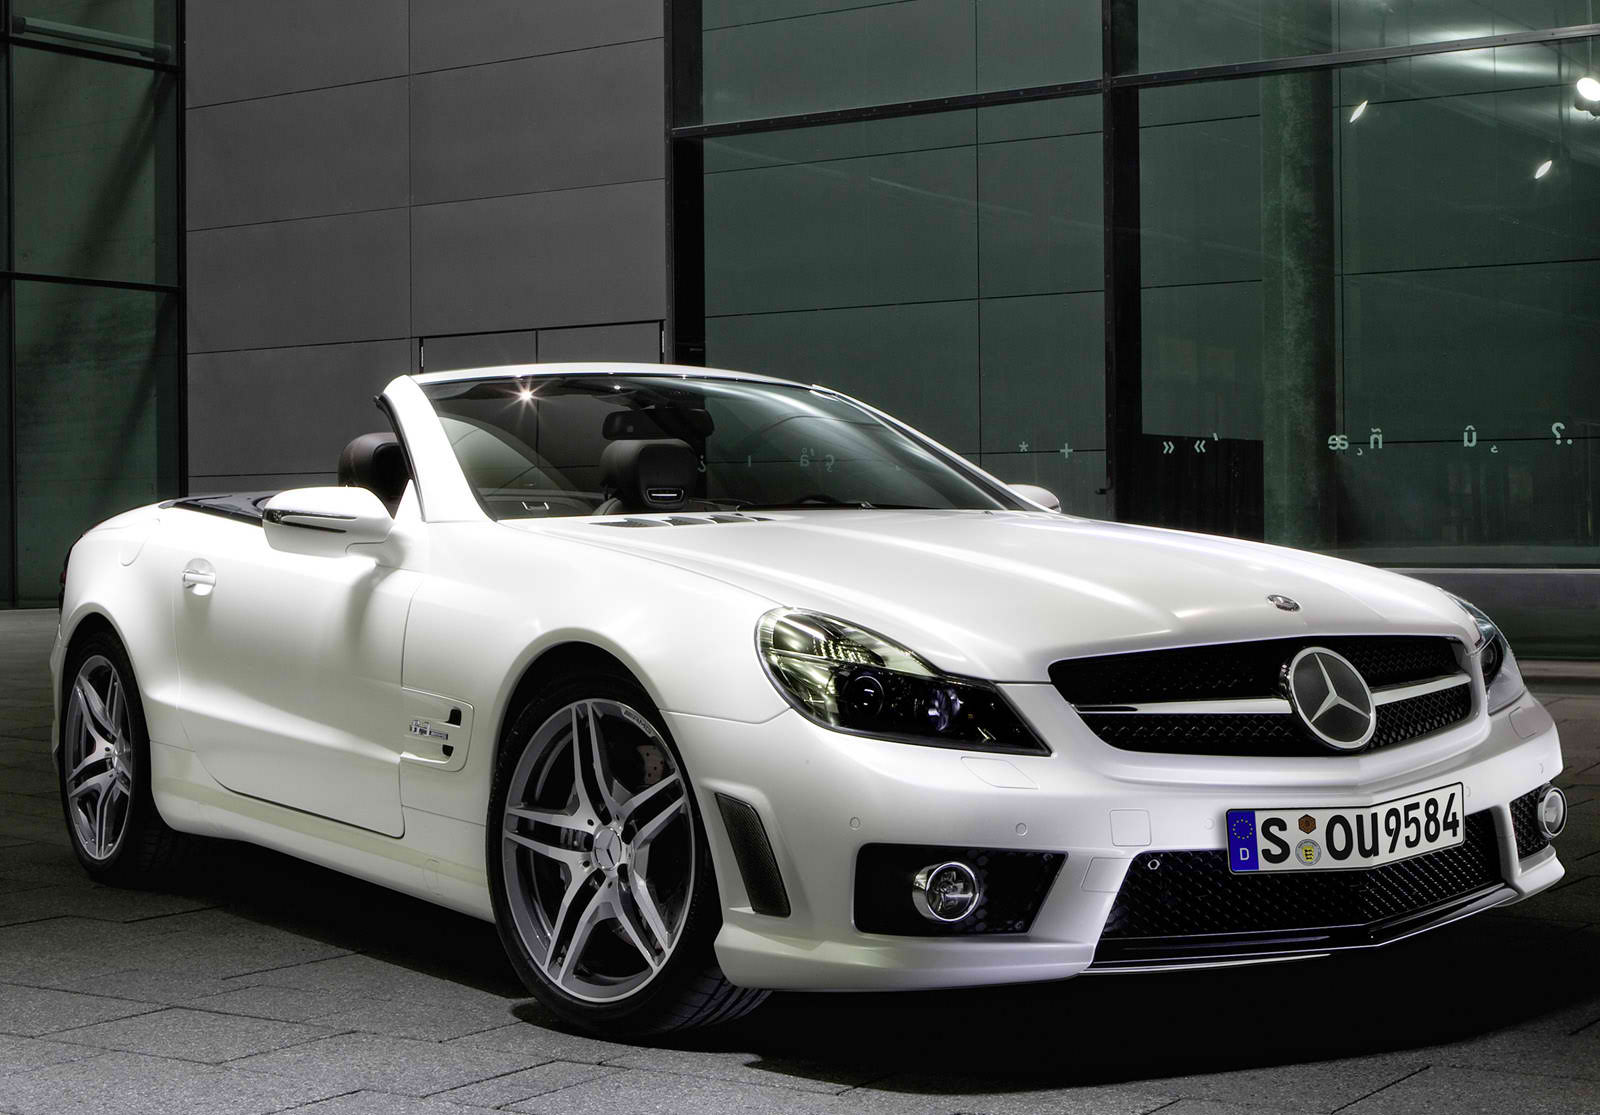 What the Management says About Mercedes Benz SL63 AMG What the Merc Managers says About Mercedes Benz SL63 AMG